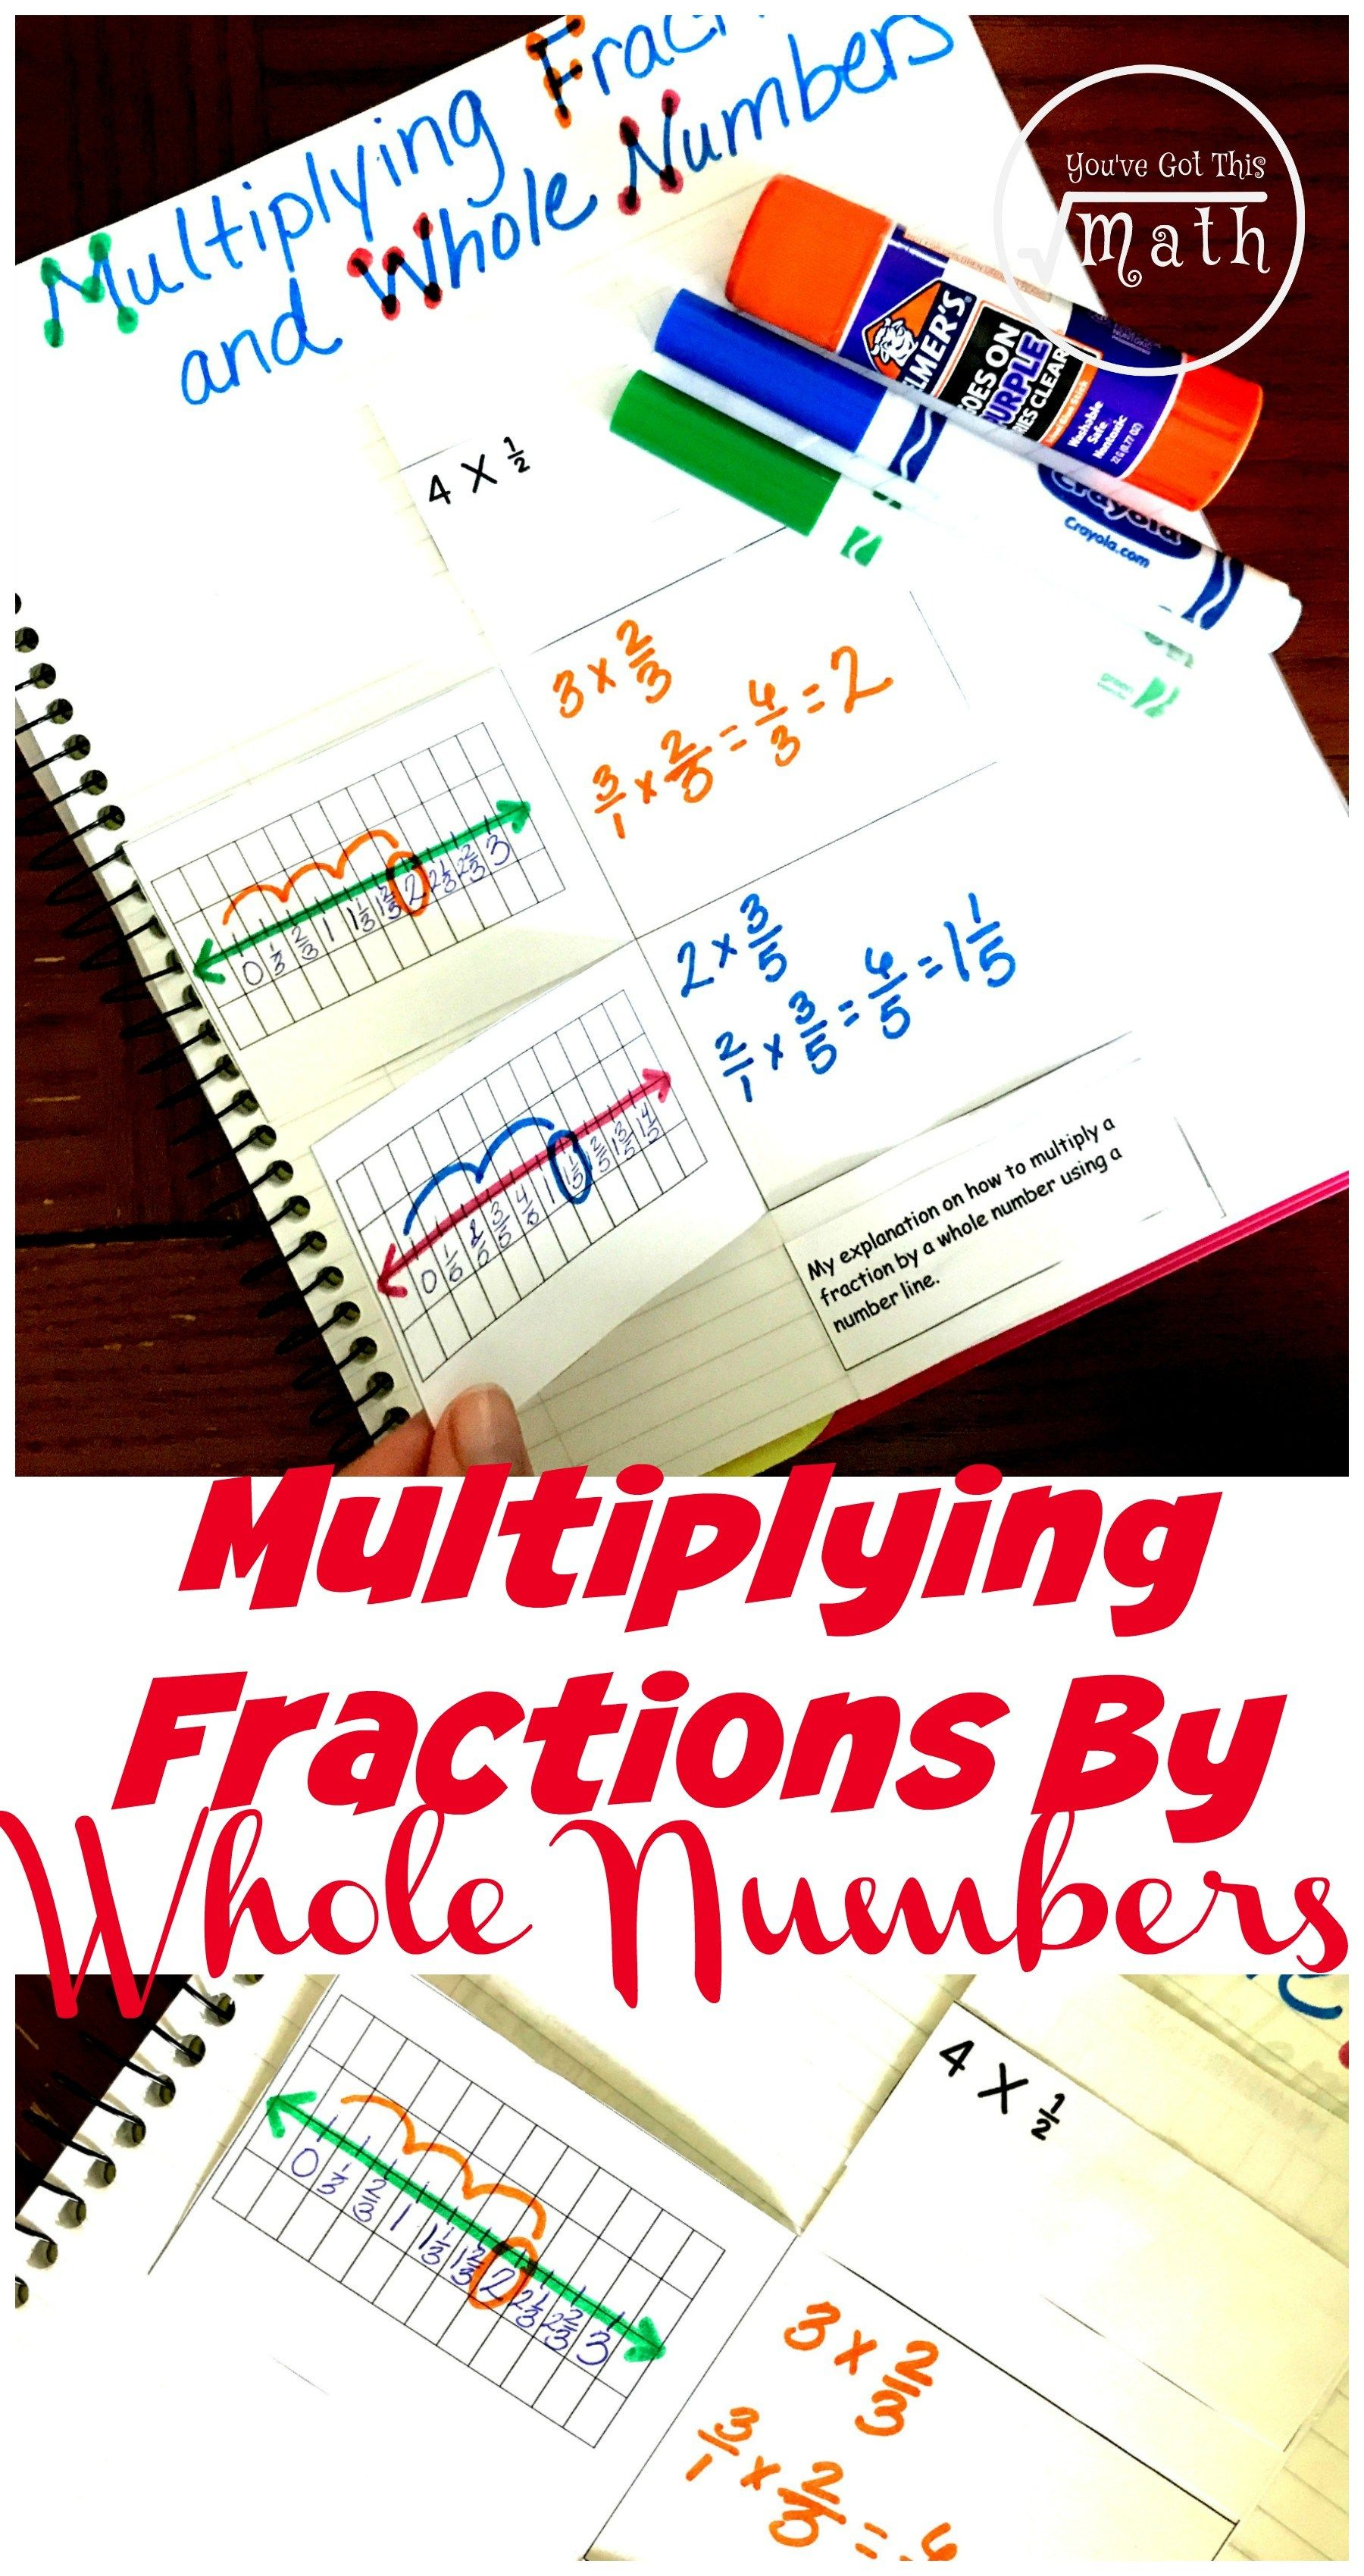 Worksheet Multiply Fraction By Whole Number